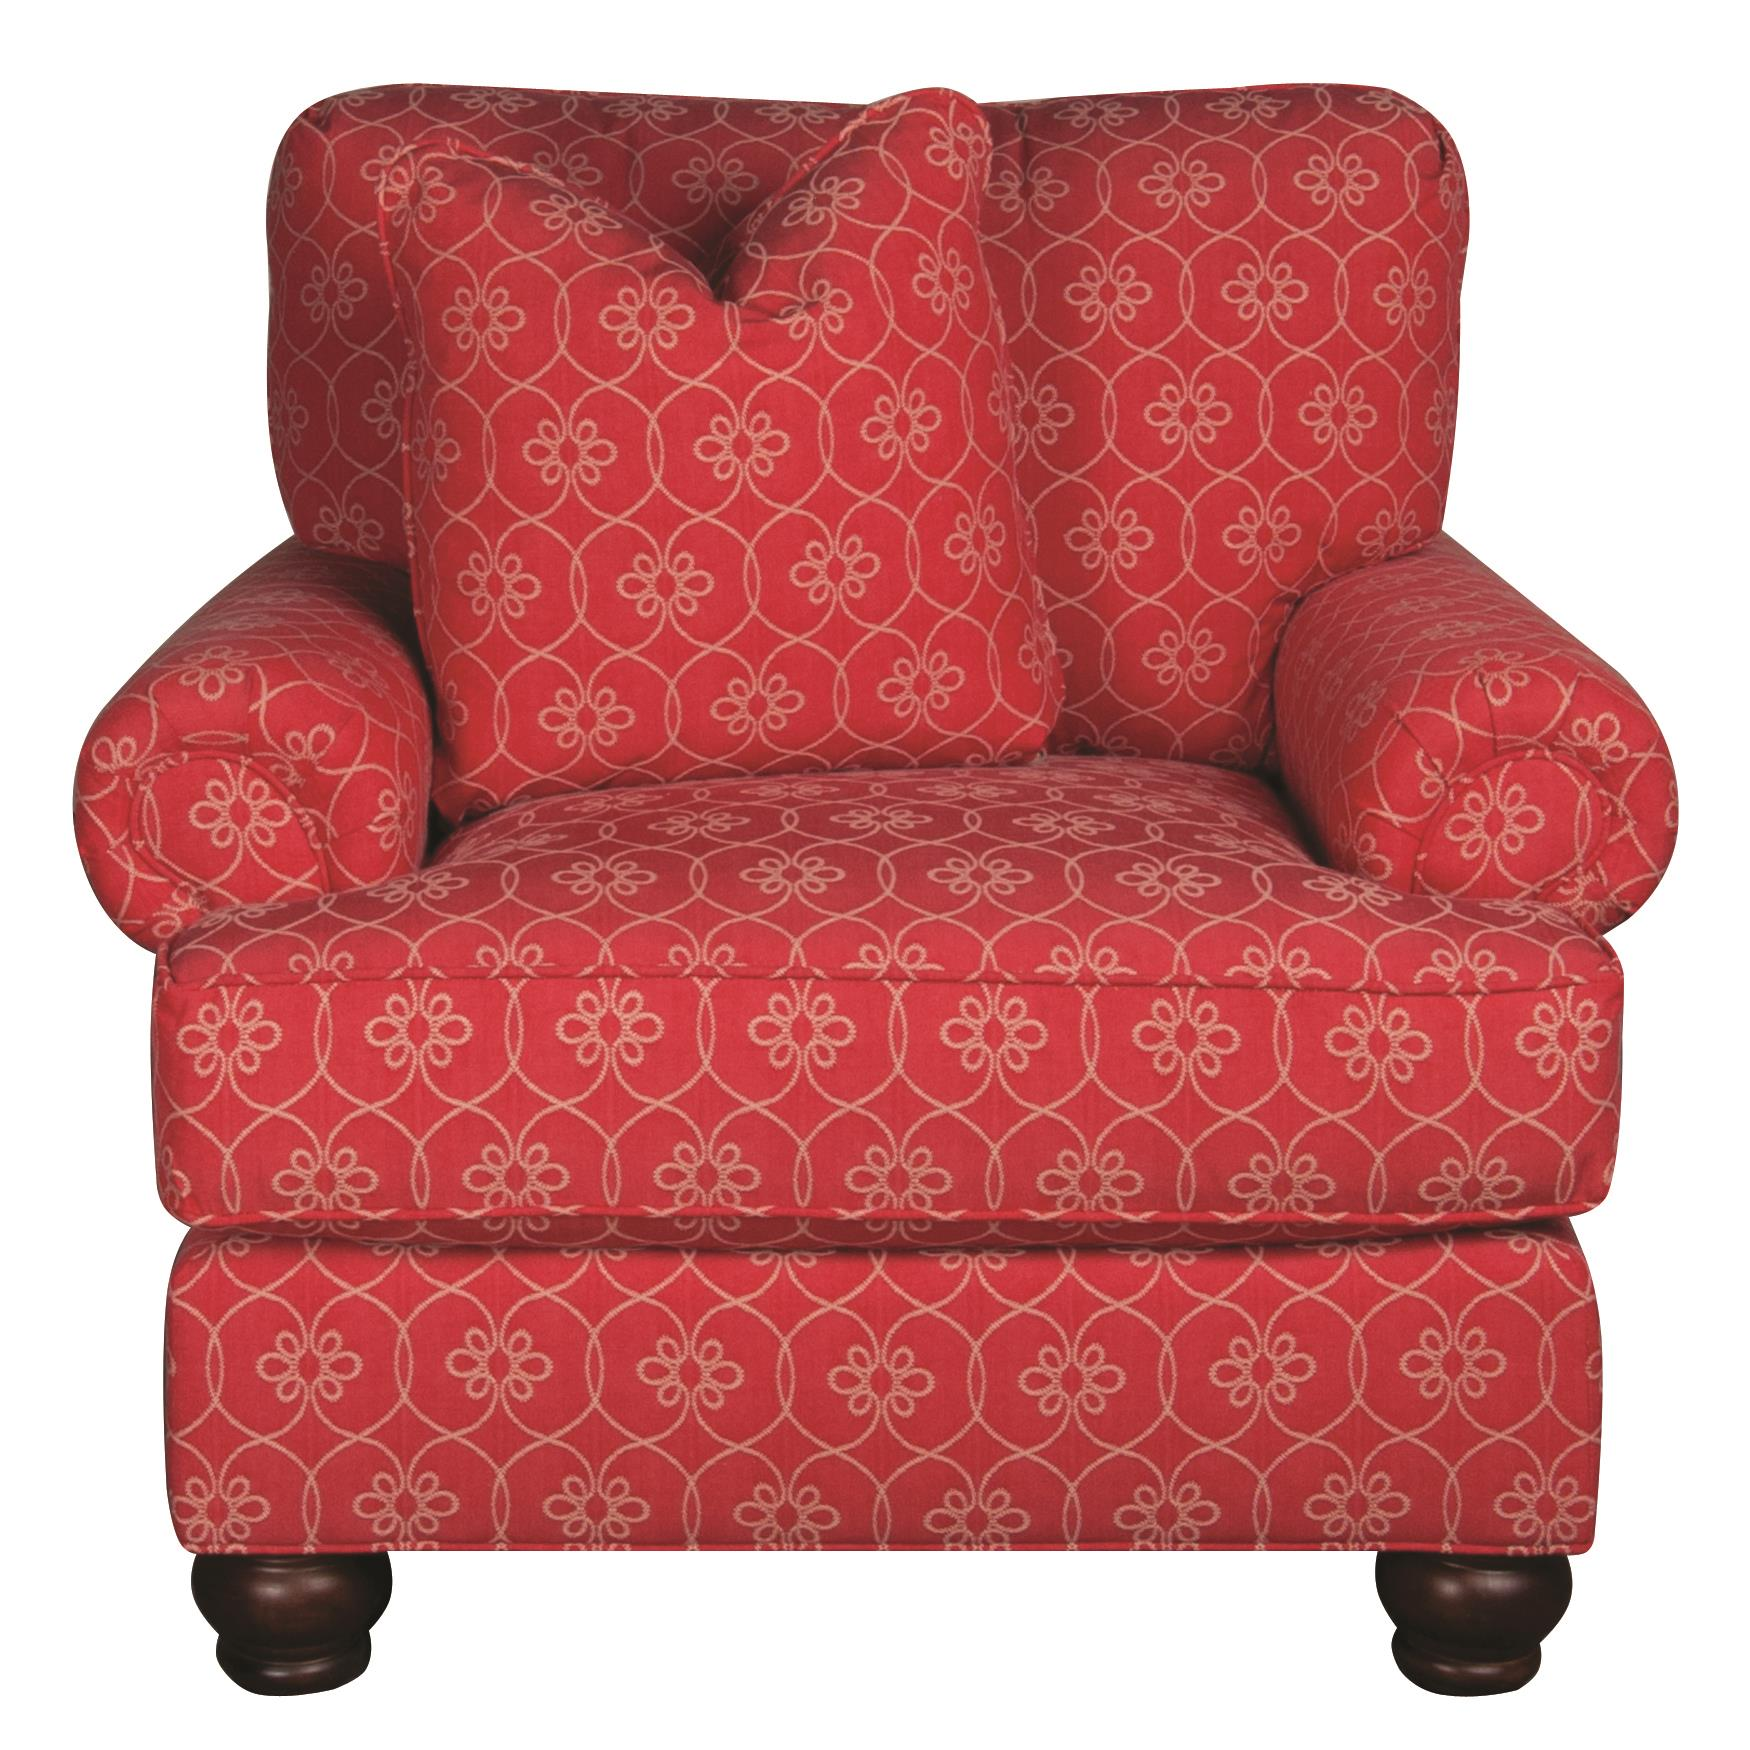 Morris Home Furnishings Belle Belle Chair - Item Number: 448118569